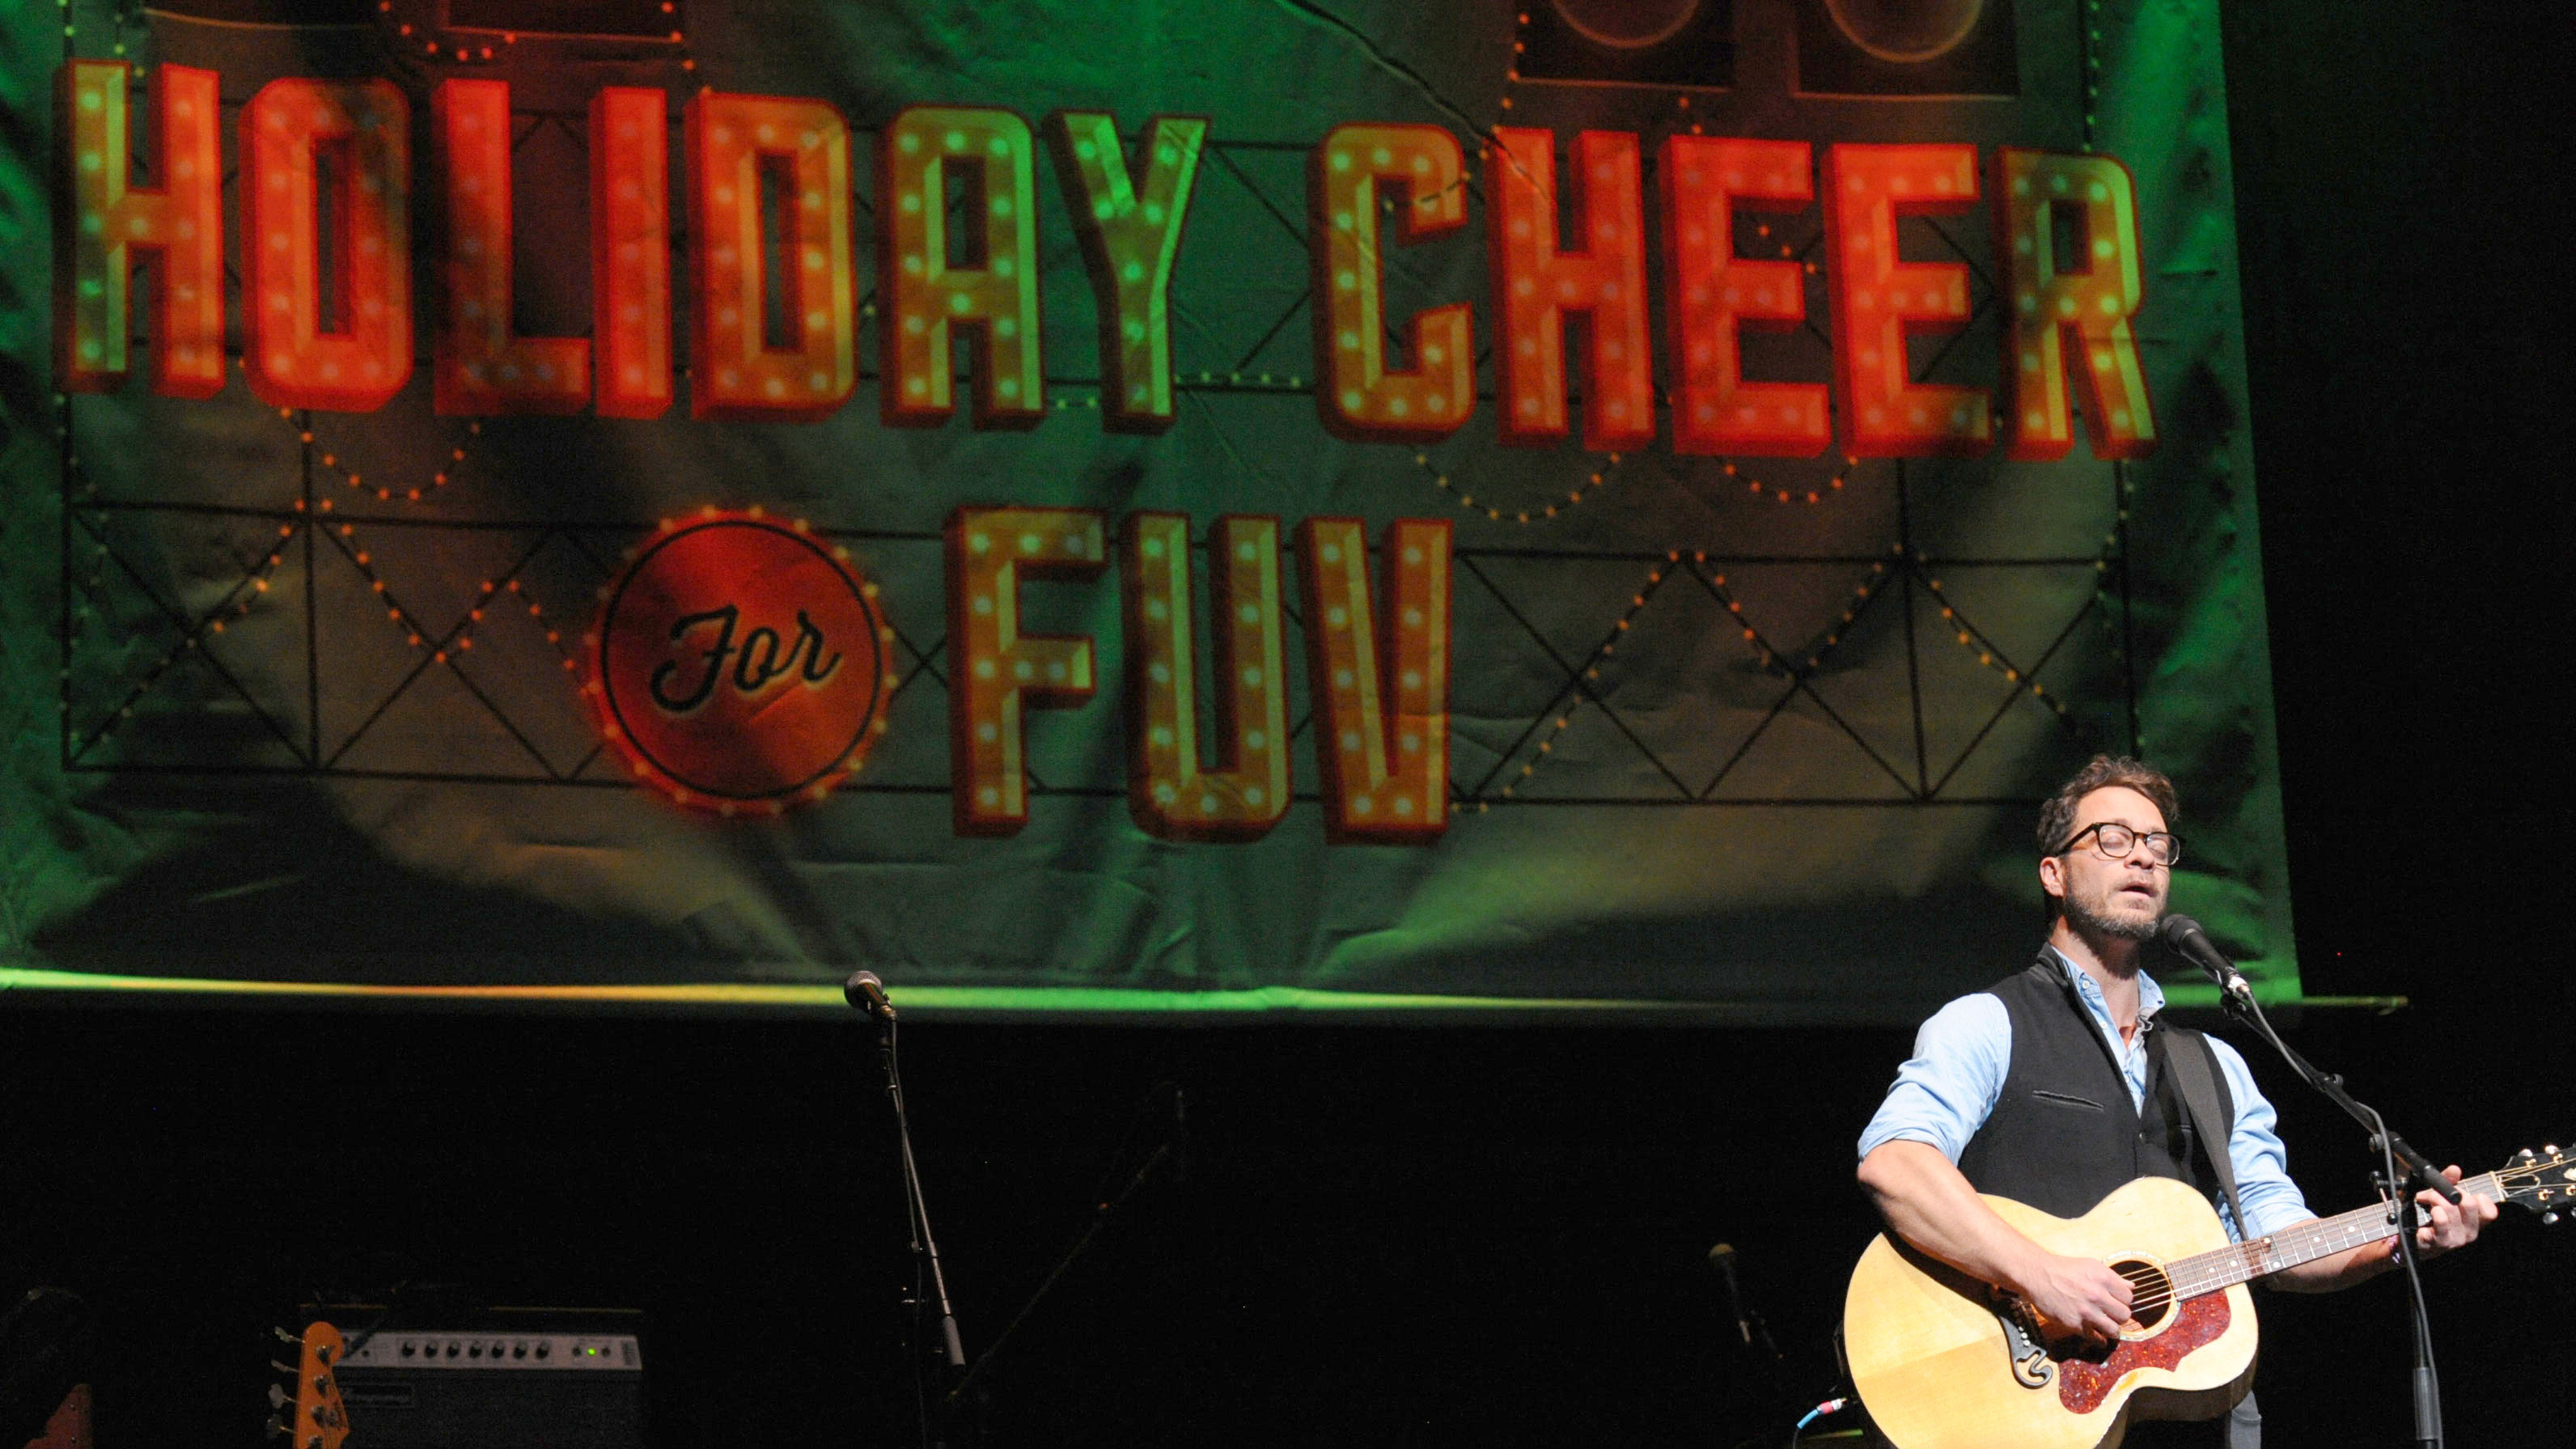 Amos Lee at Holiday Cheer for FUV